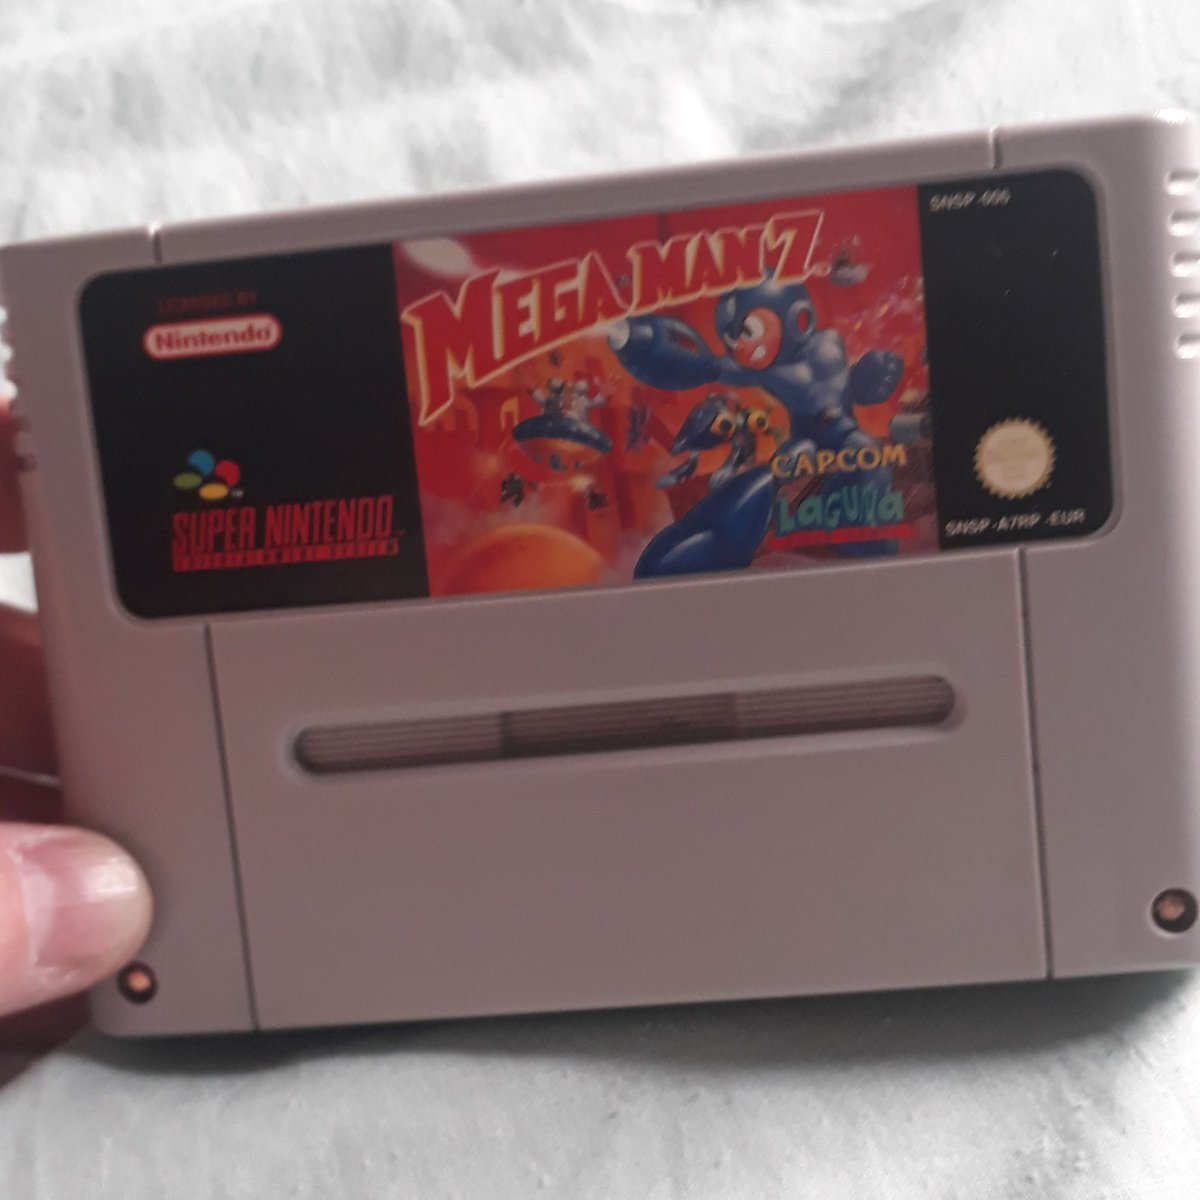 Happy #SNESFriday. Sorry I haven't really been around as much. Just getting ready to move home 😁  For the meantime, here's my entry for #MegaManWeek.